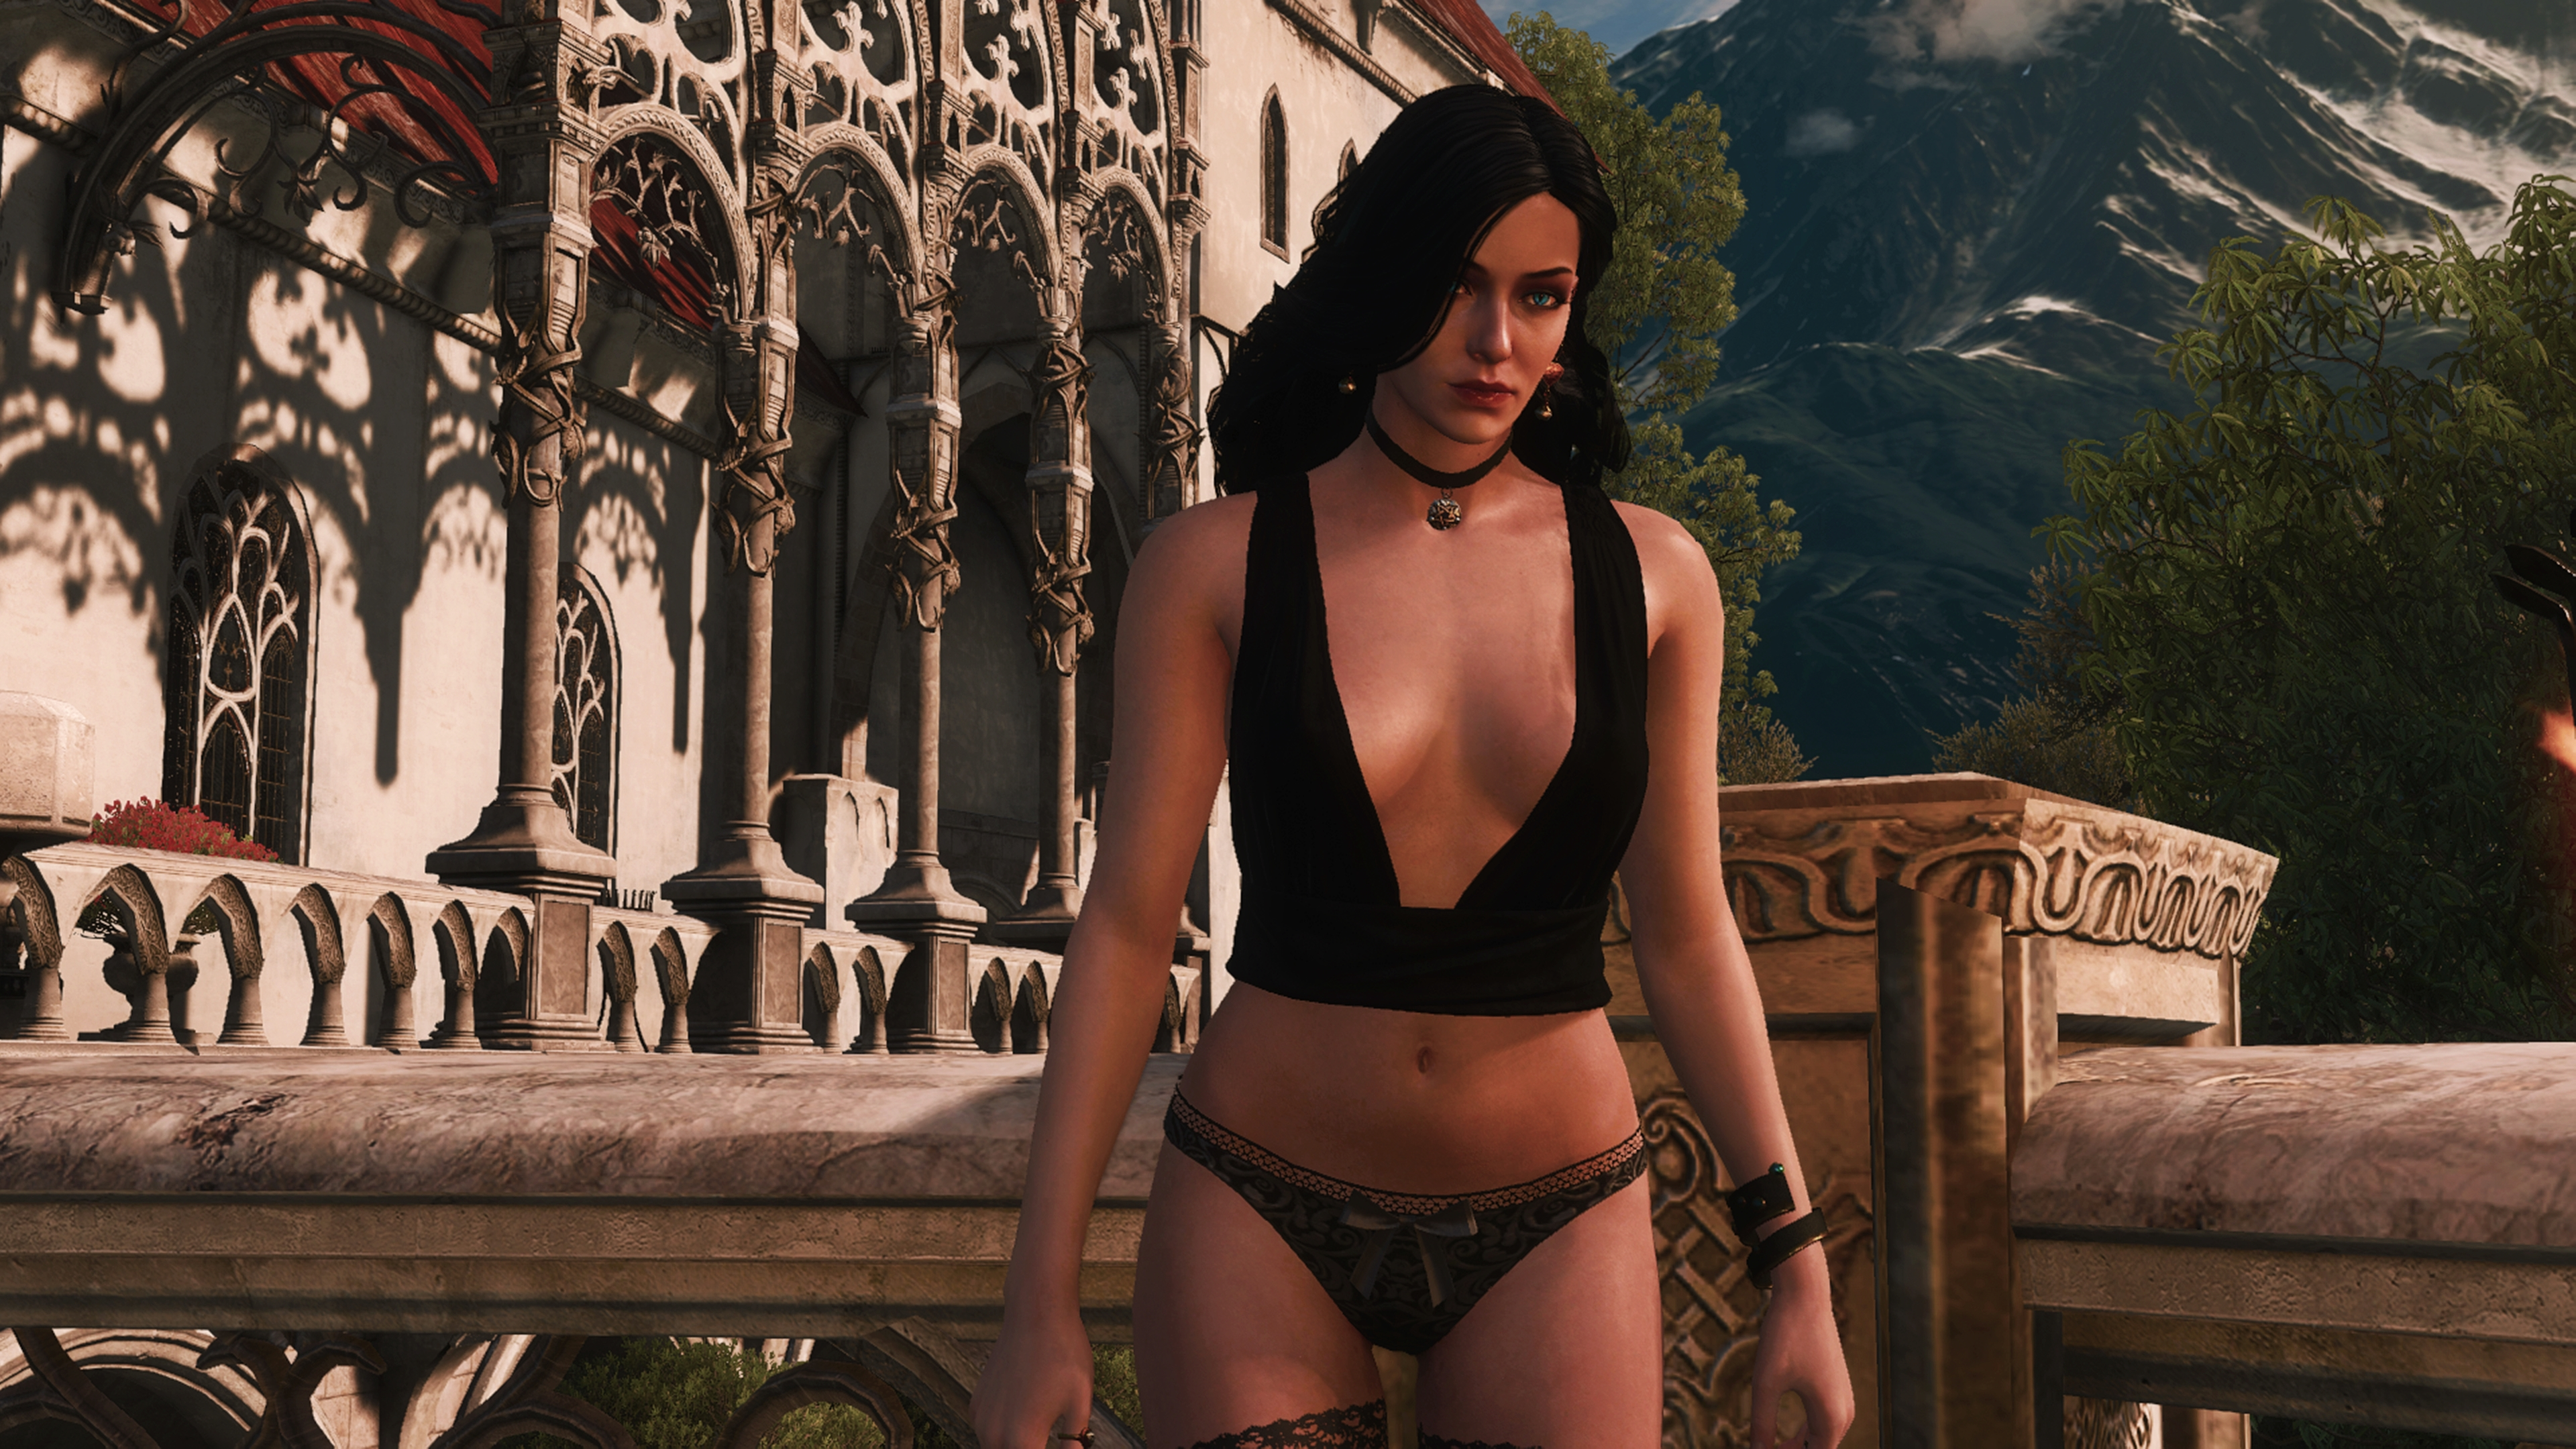 Inconspicuous at The Witcher 3 Nexus - Mods and community